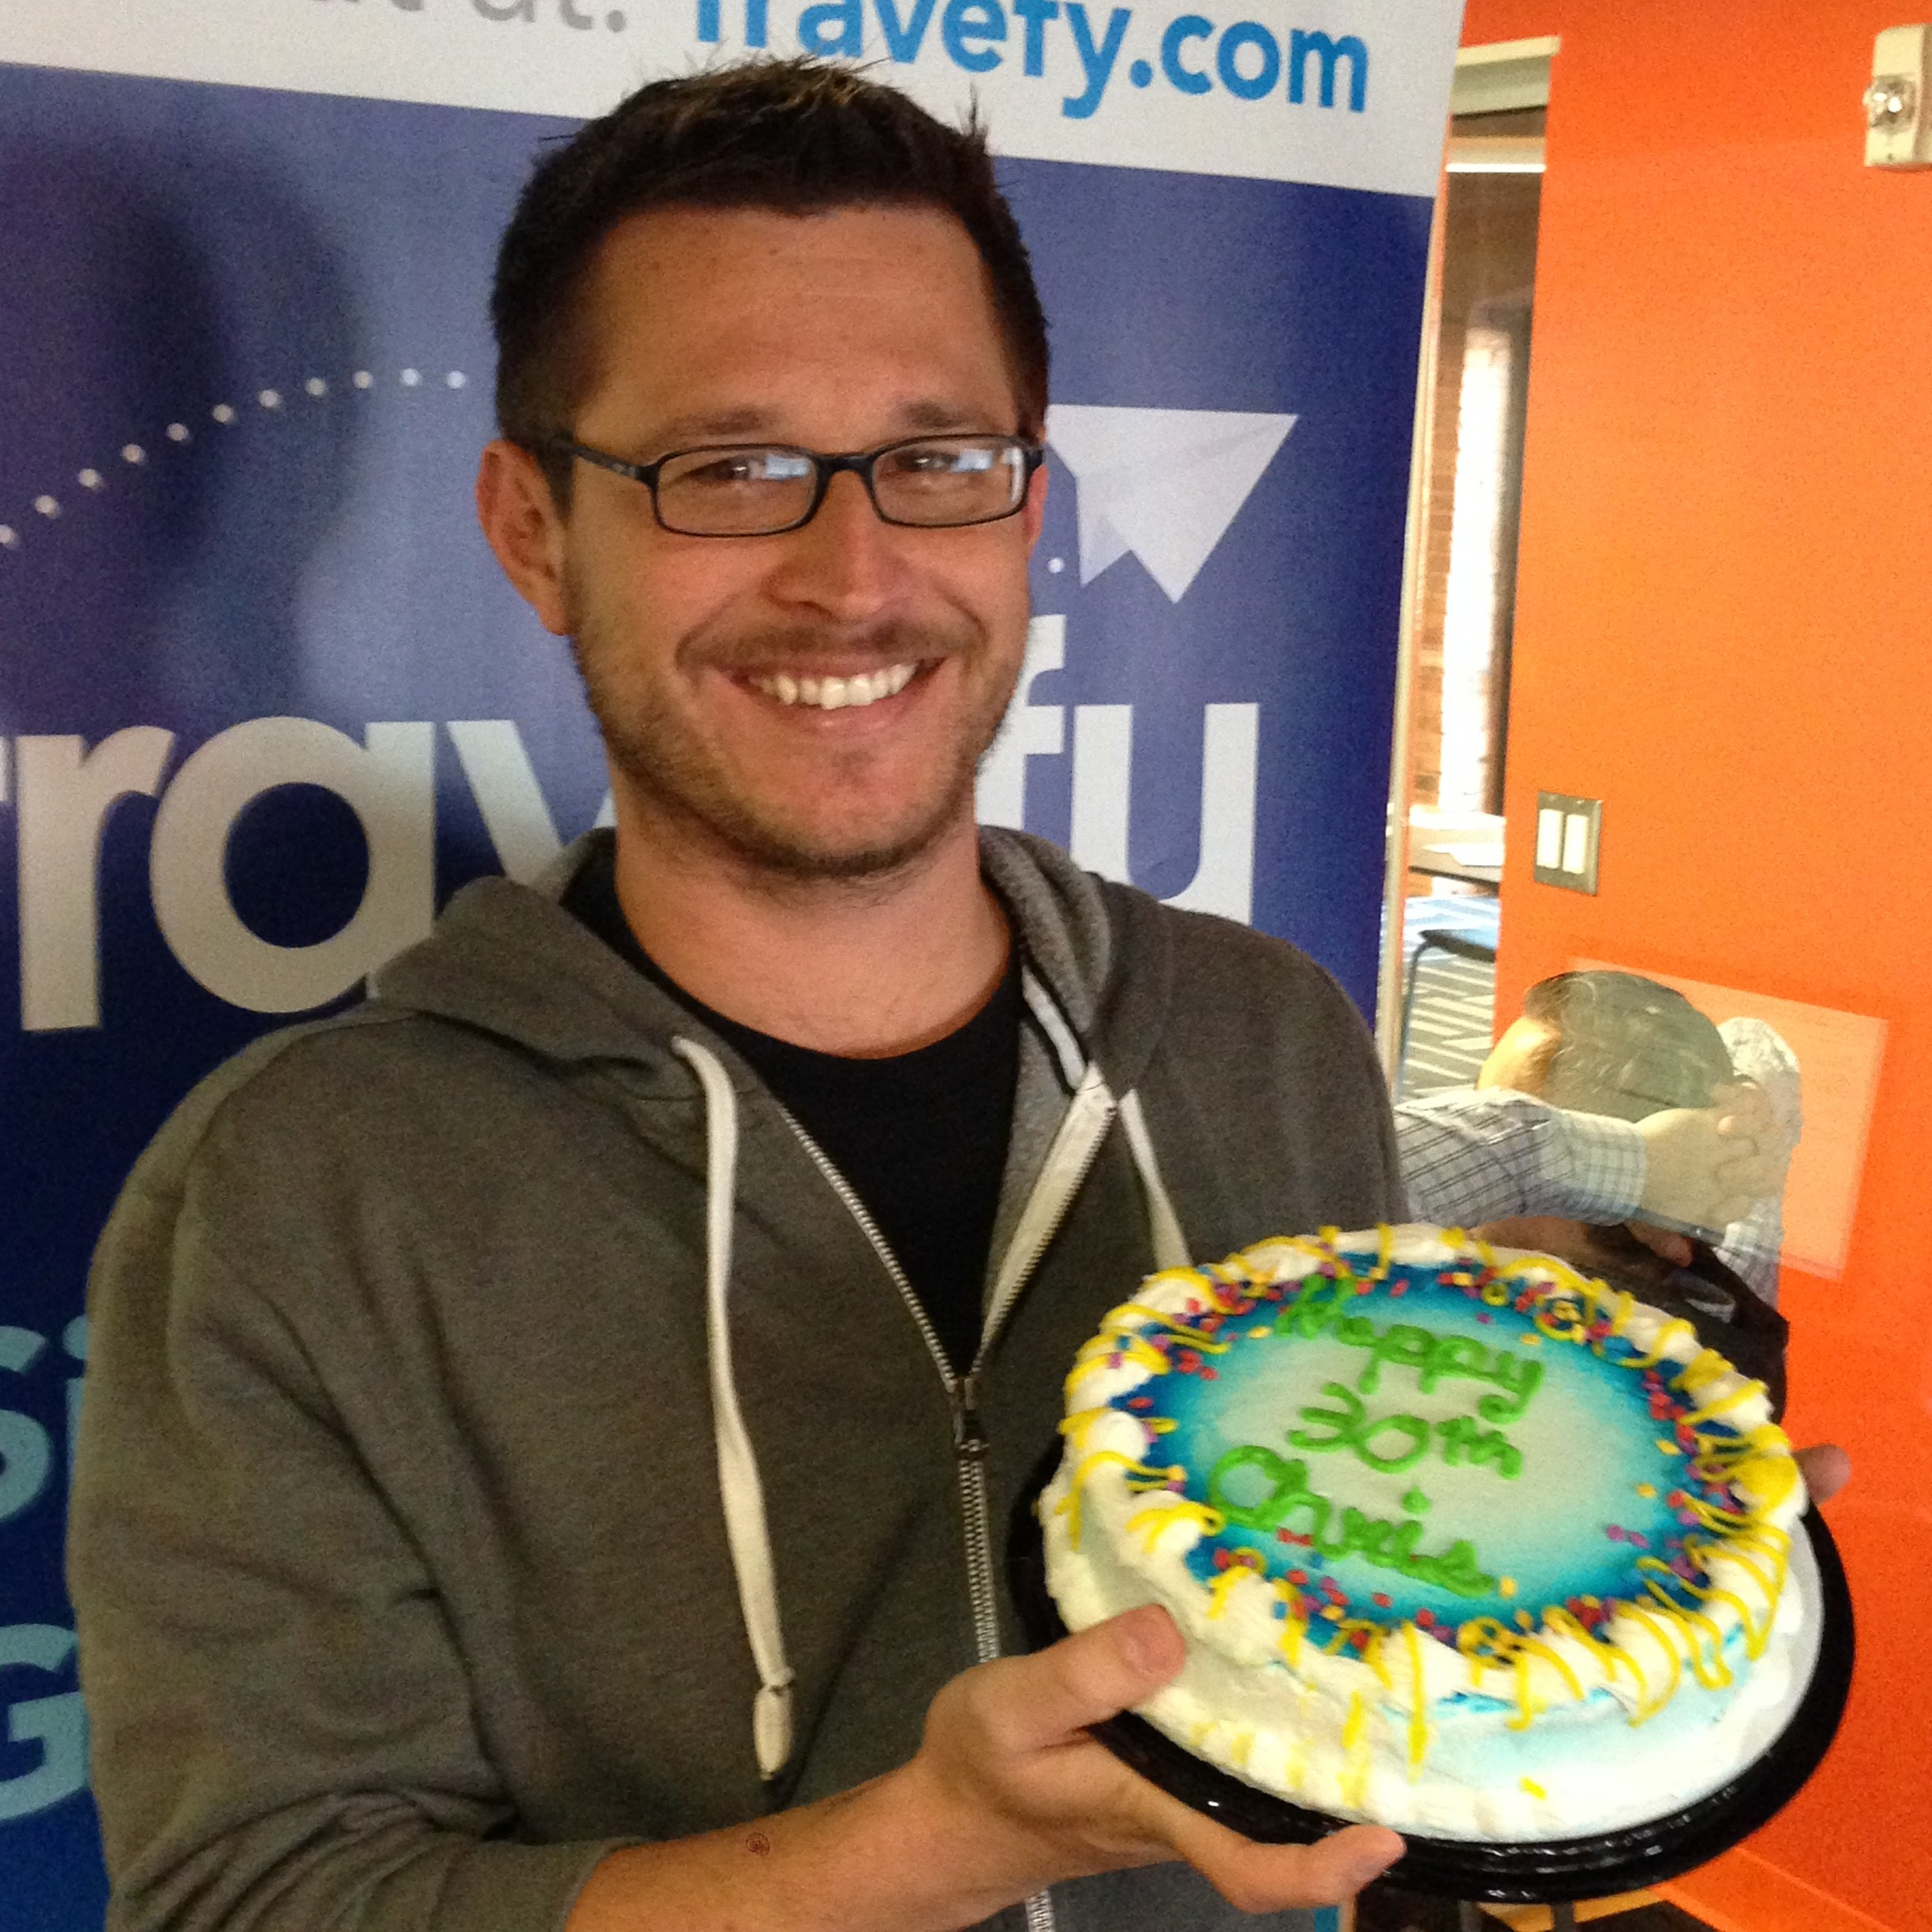 Happy 30th Birthday to Travefy s Chris Davis - Travefy Blog